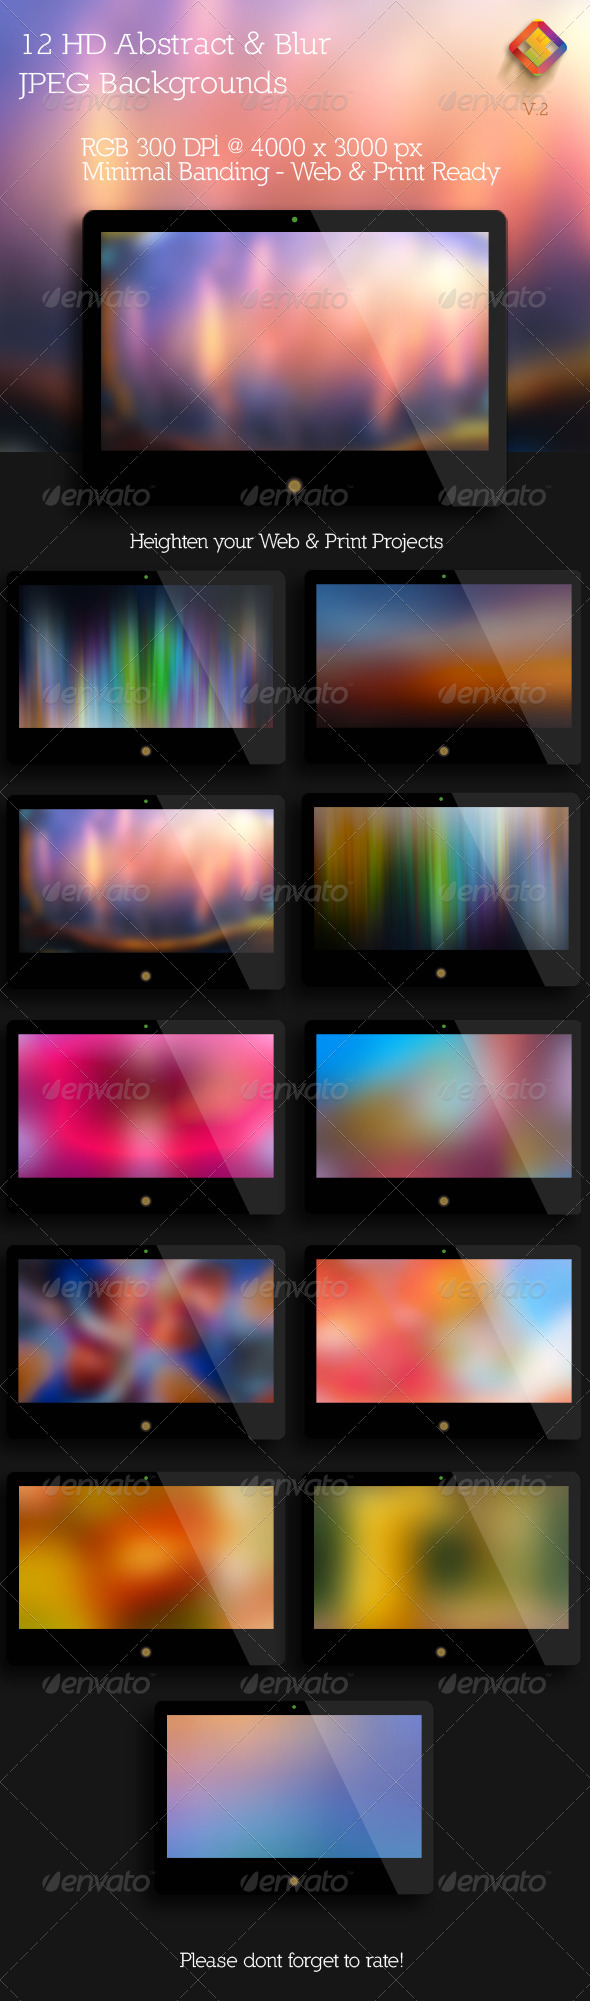 HD Abstract and Blur Backgrounds V.2 - Abstract Backgrounds